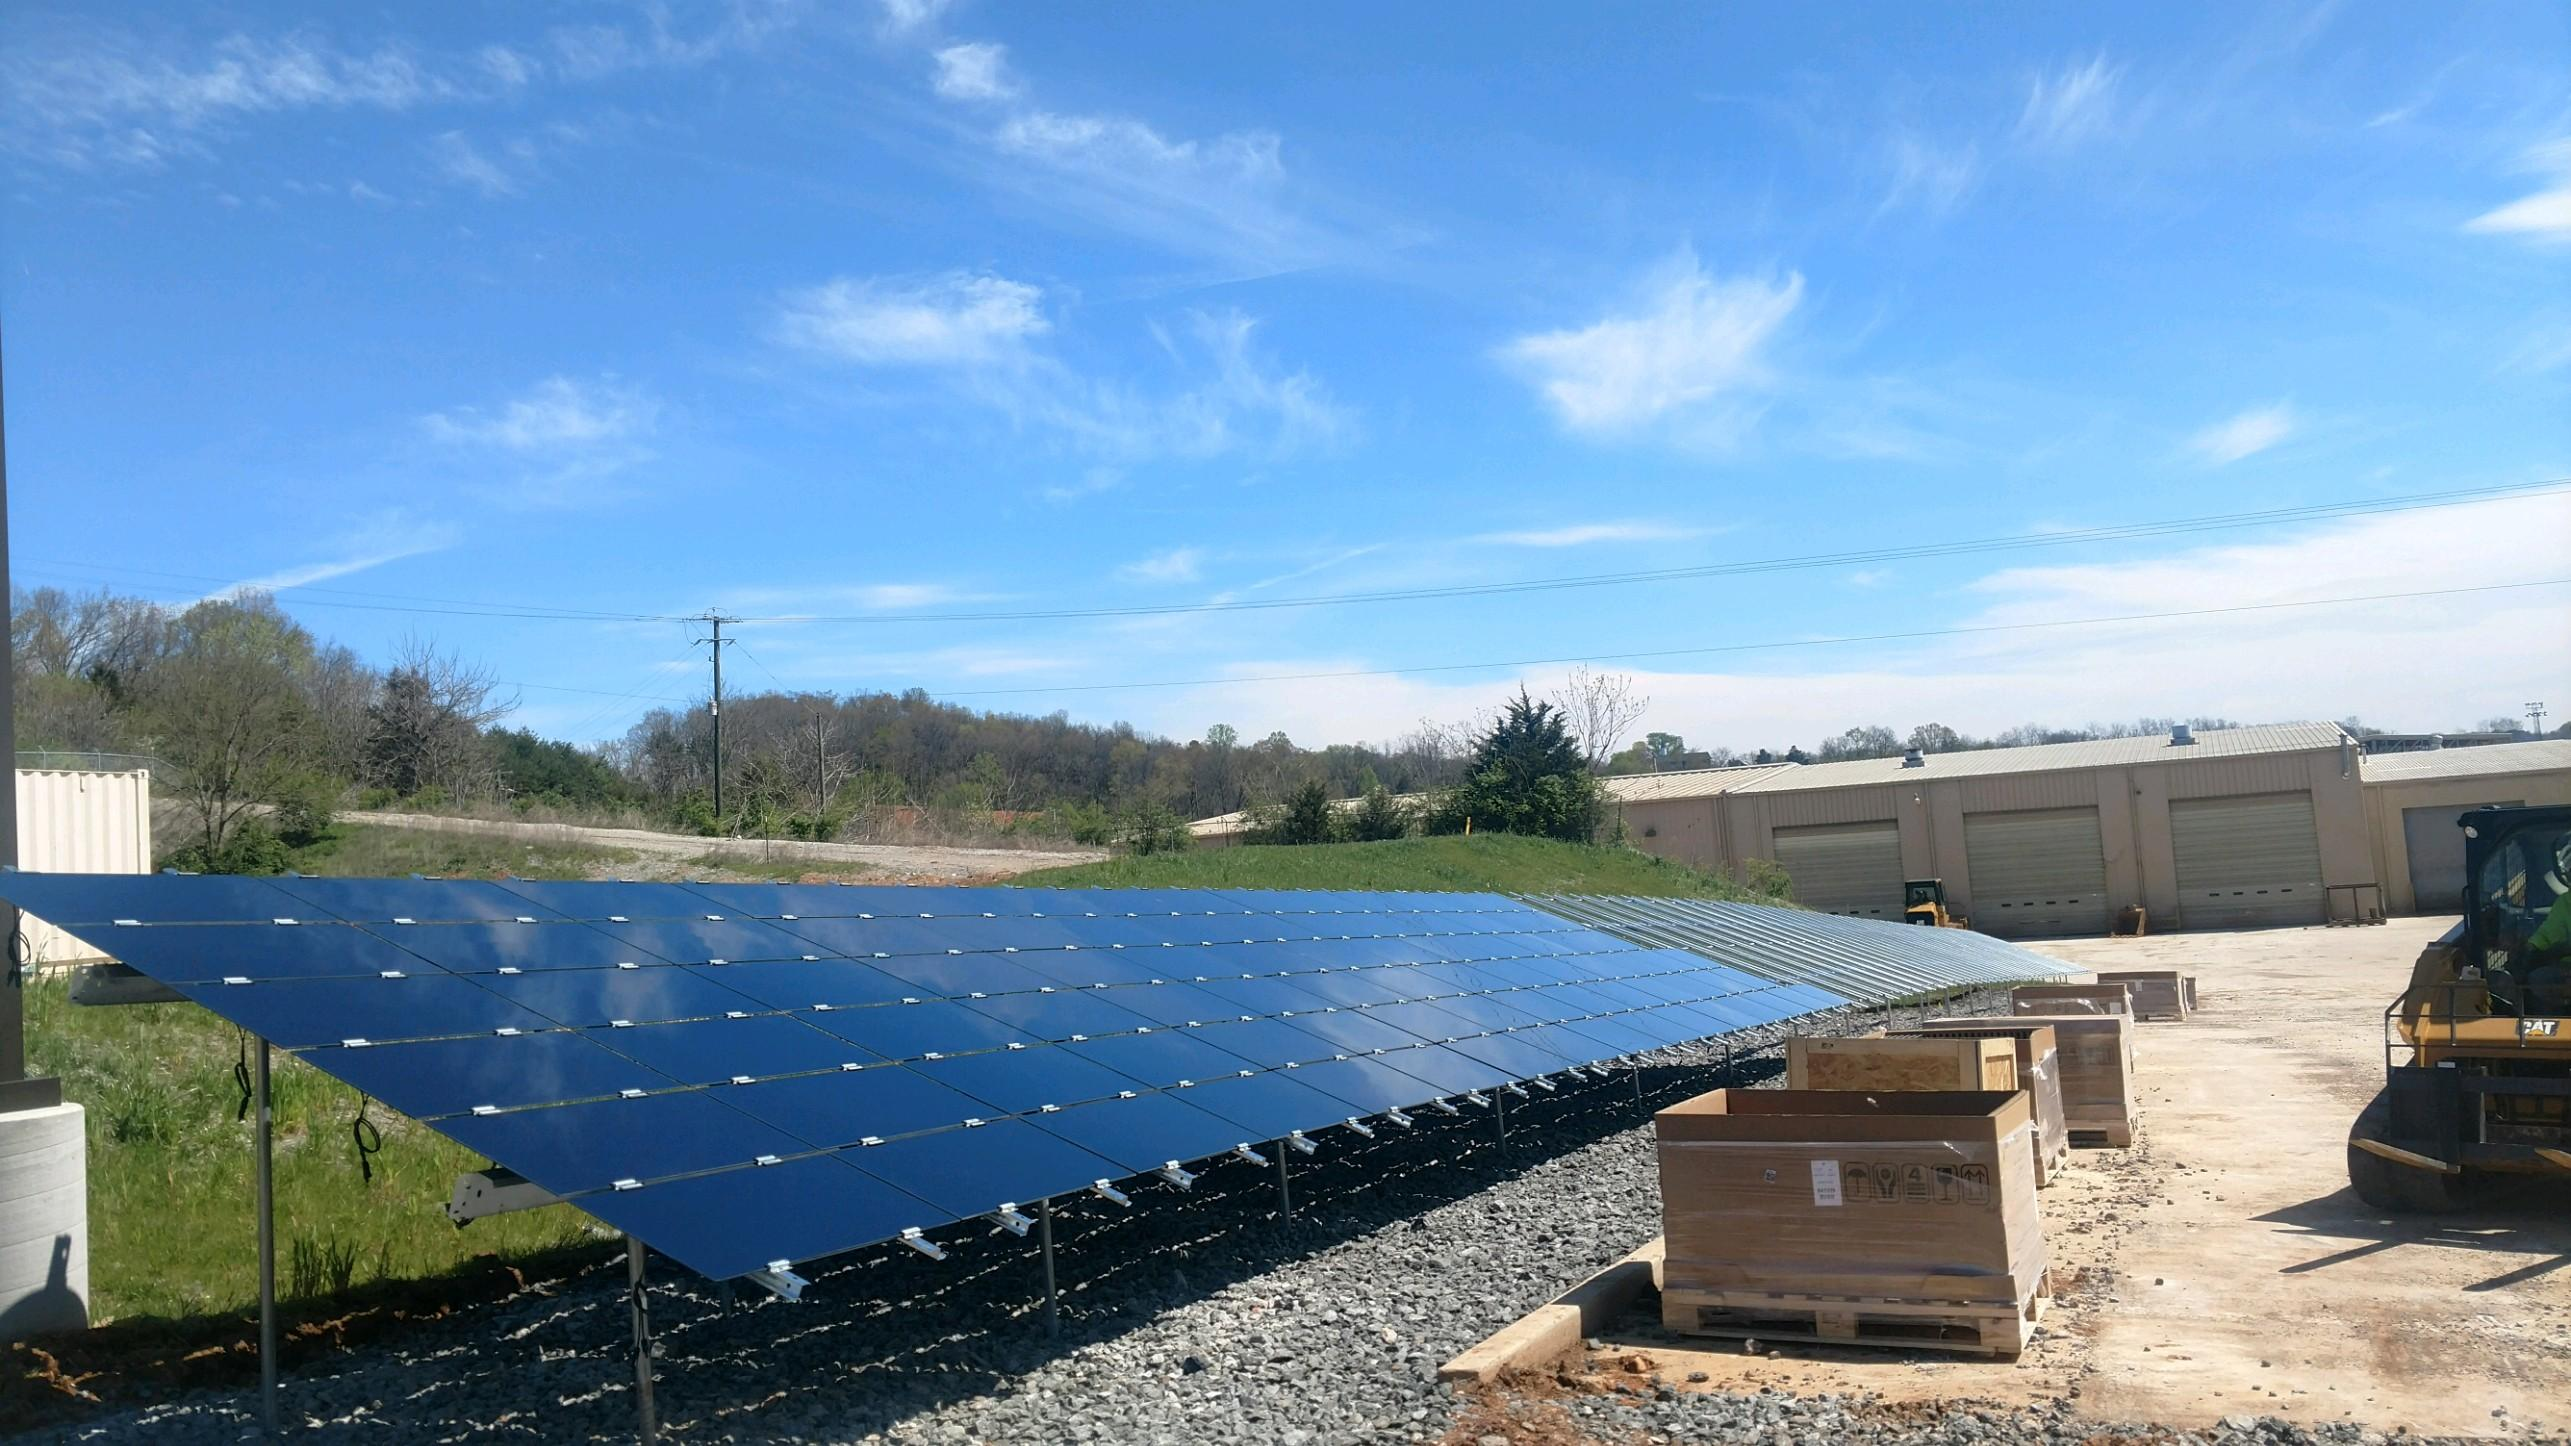 36.80kW, Adv Mod, First Solar Panels, Racking